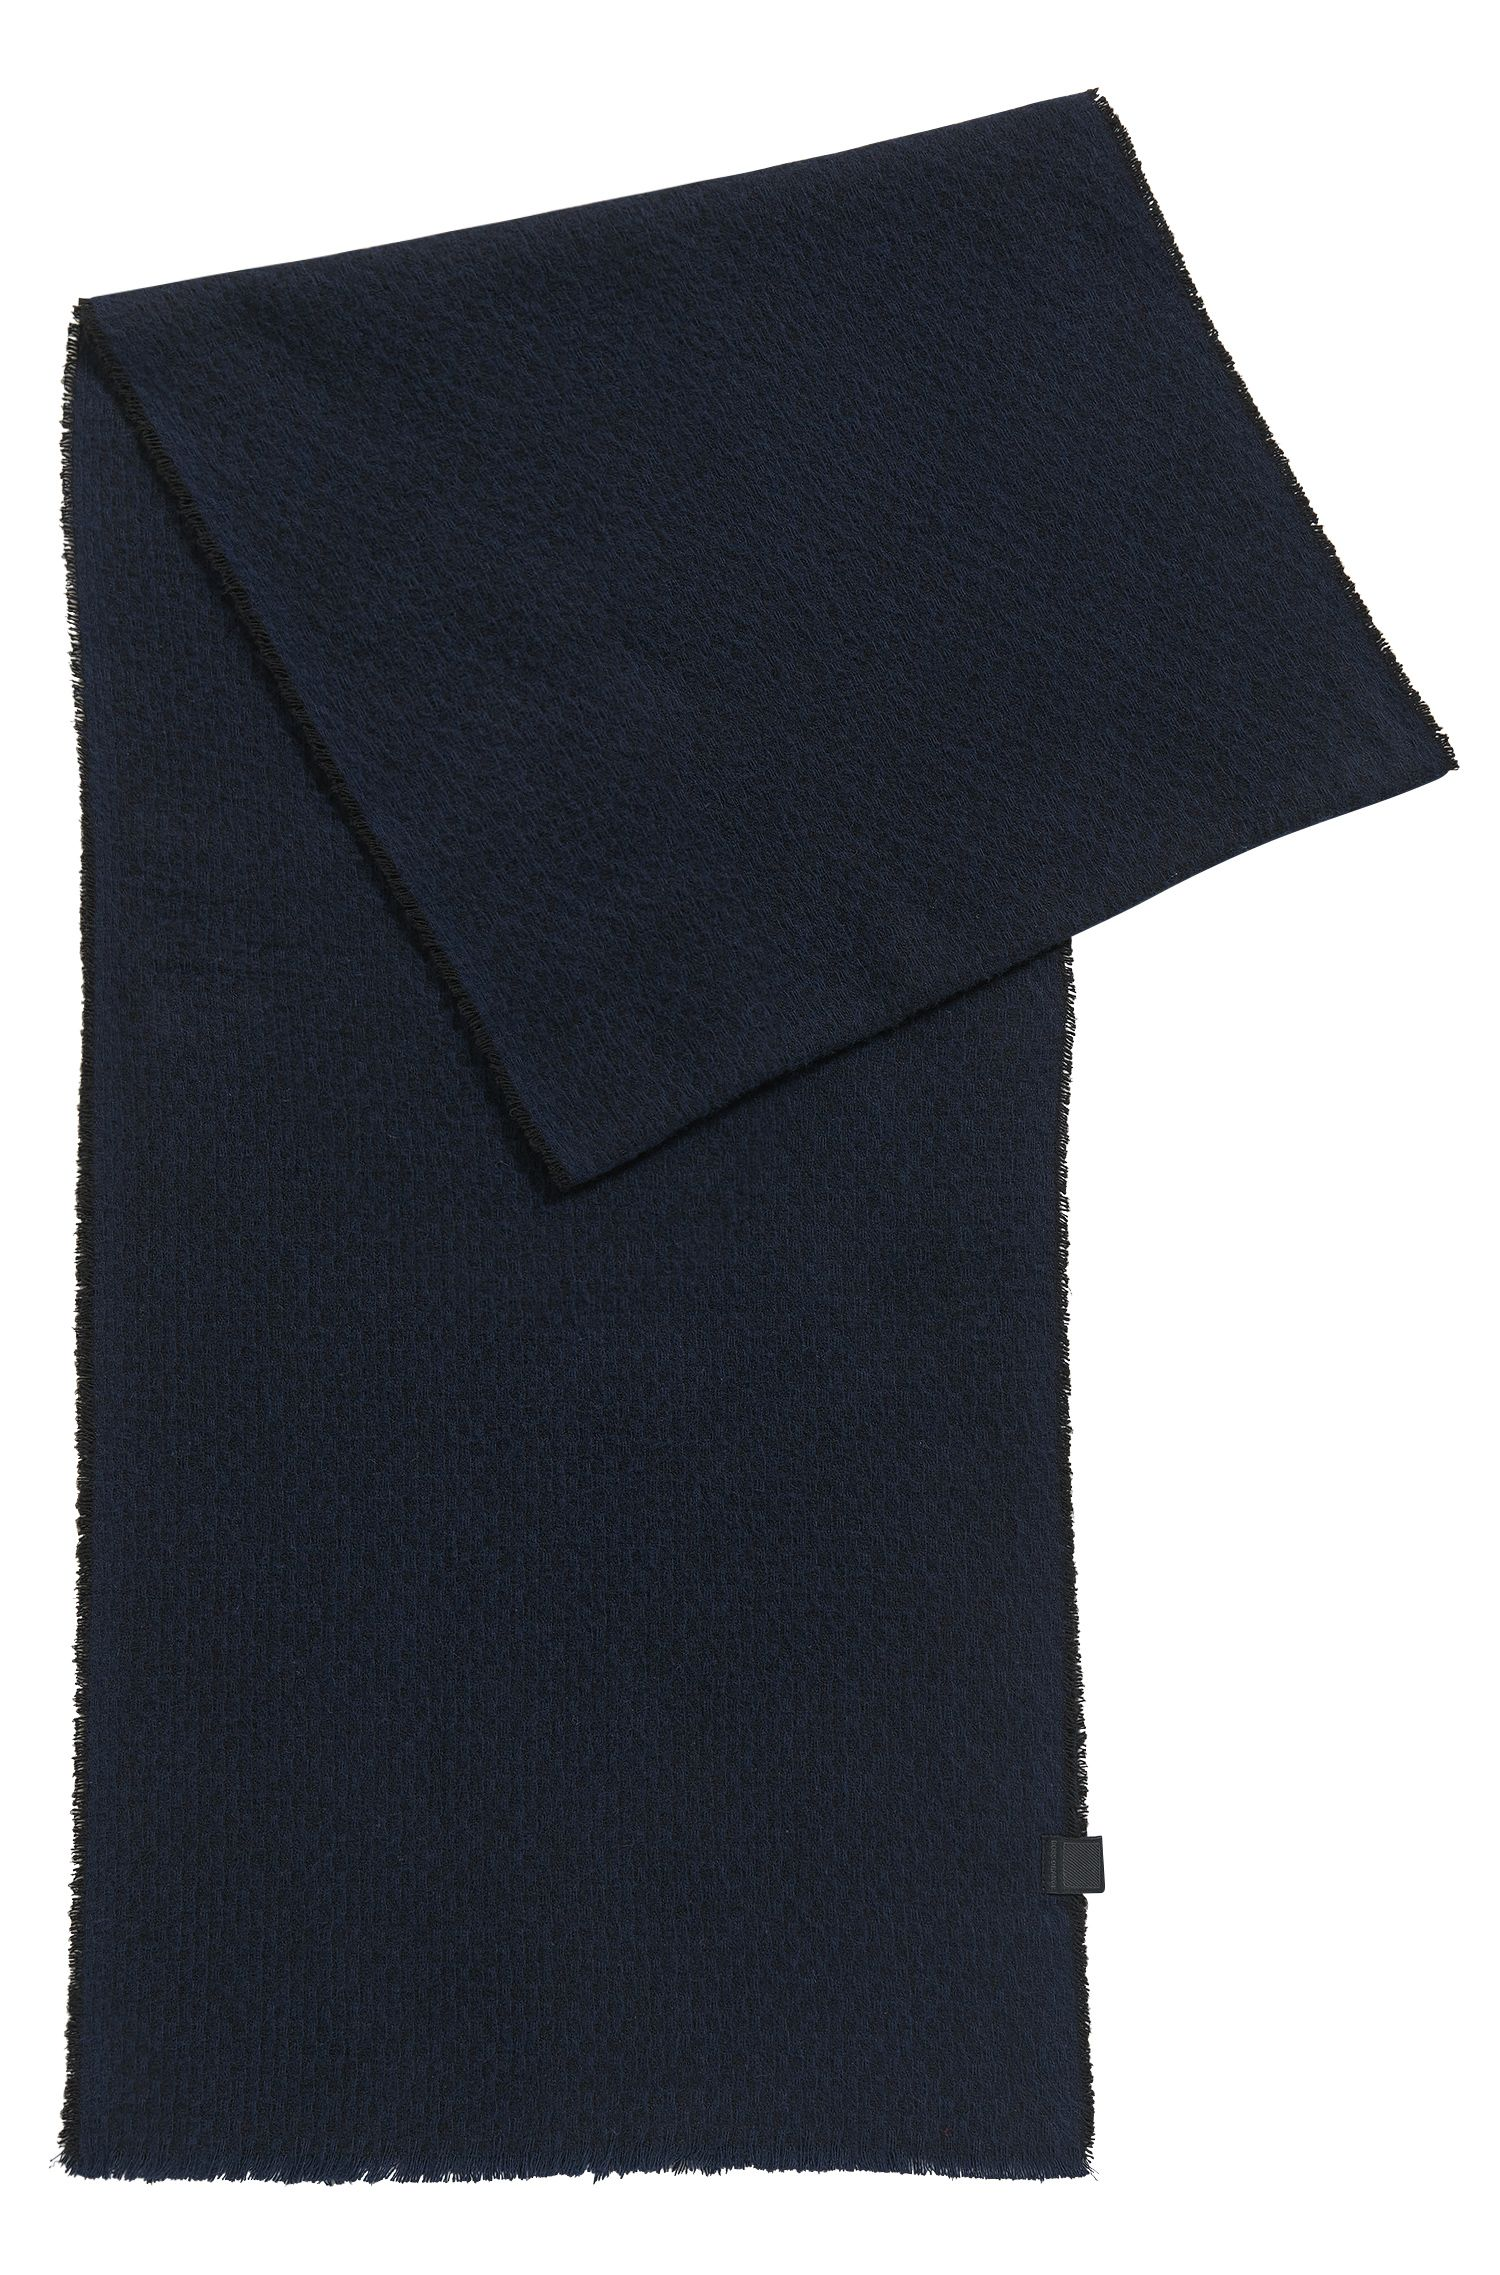 Lightly fringed scarf in structured cotton